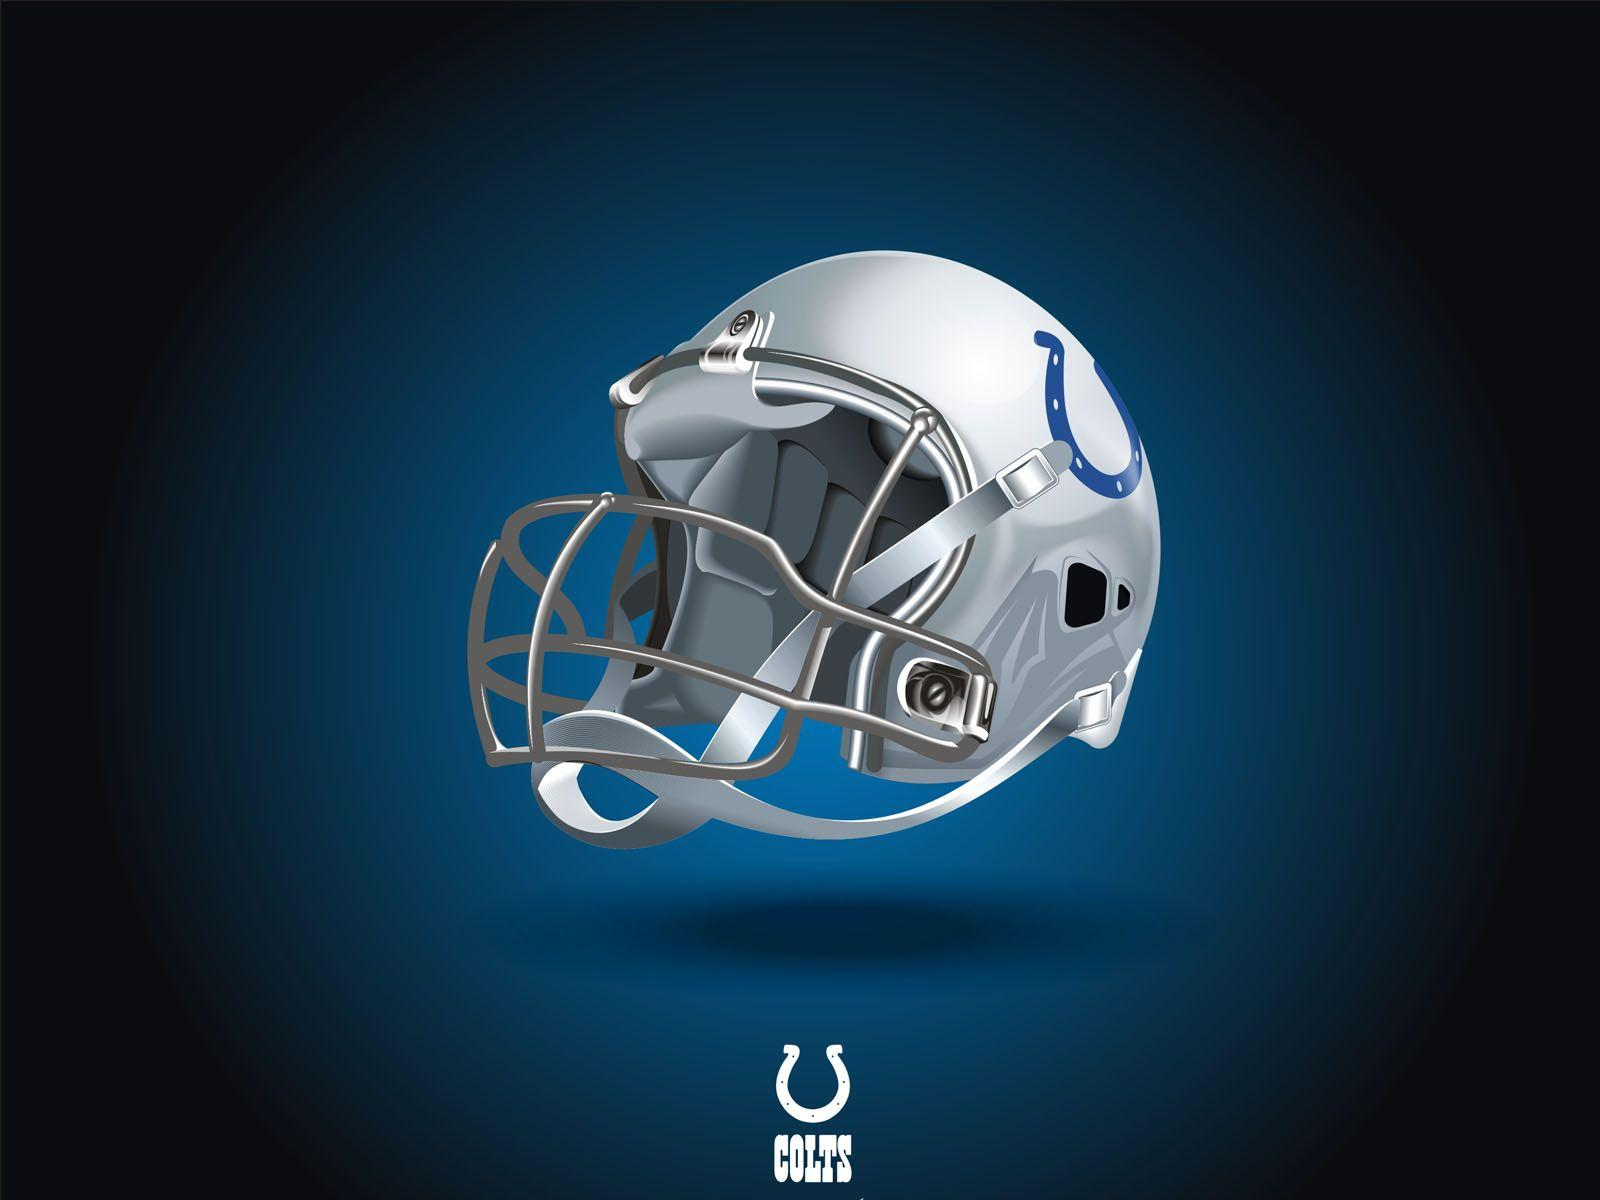 Dallas Cowboys 3d Wallpaper Indianapolis Colts Wallpapers 2015 Wallpaper Cave